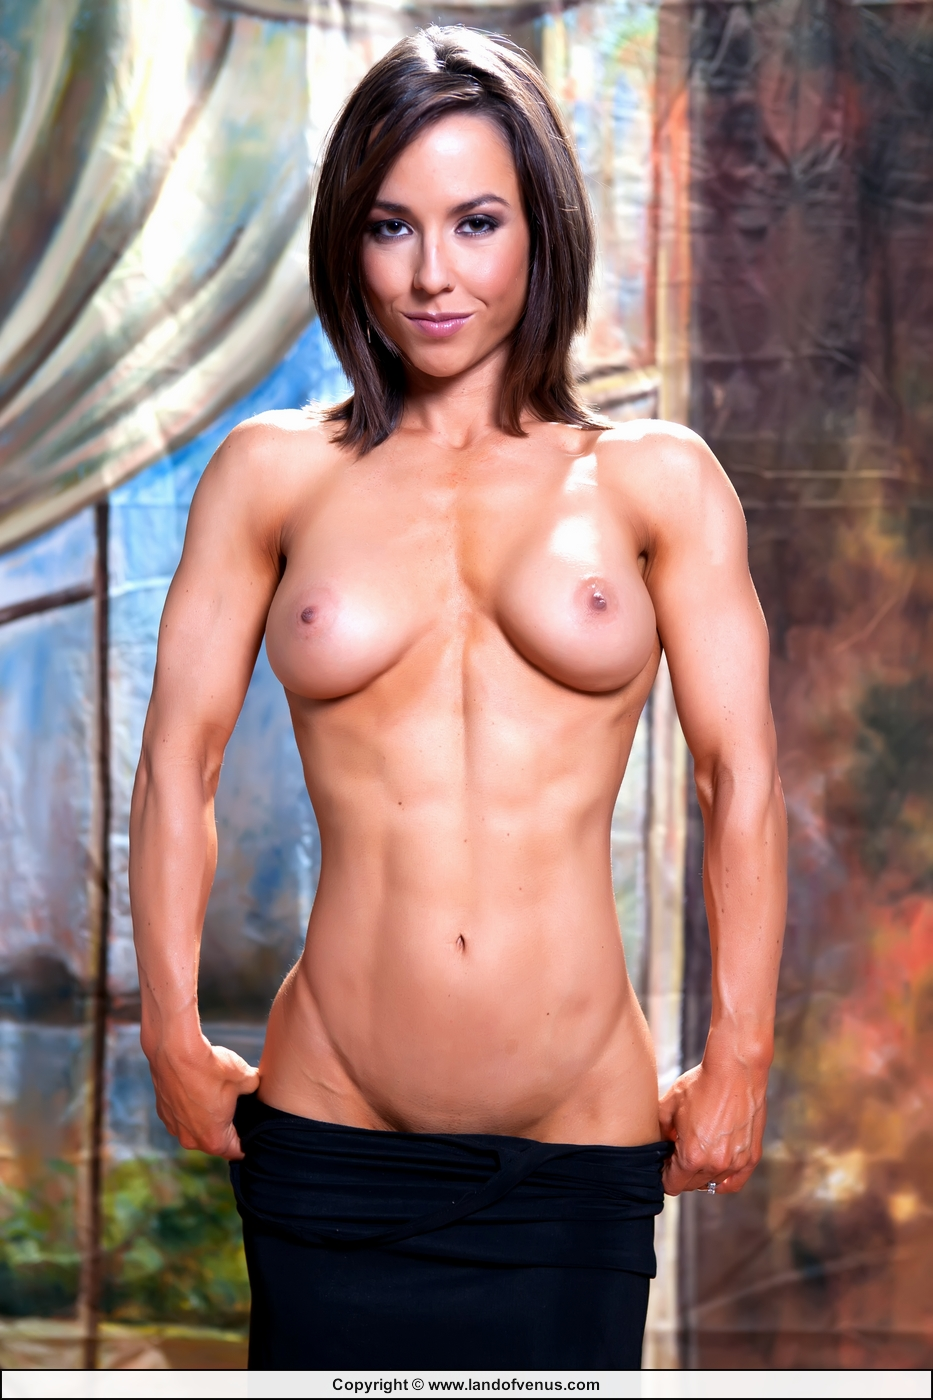 nude female fitness competition